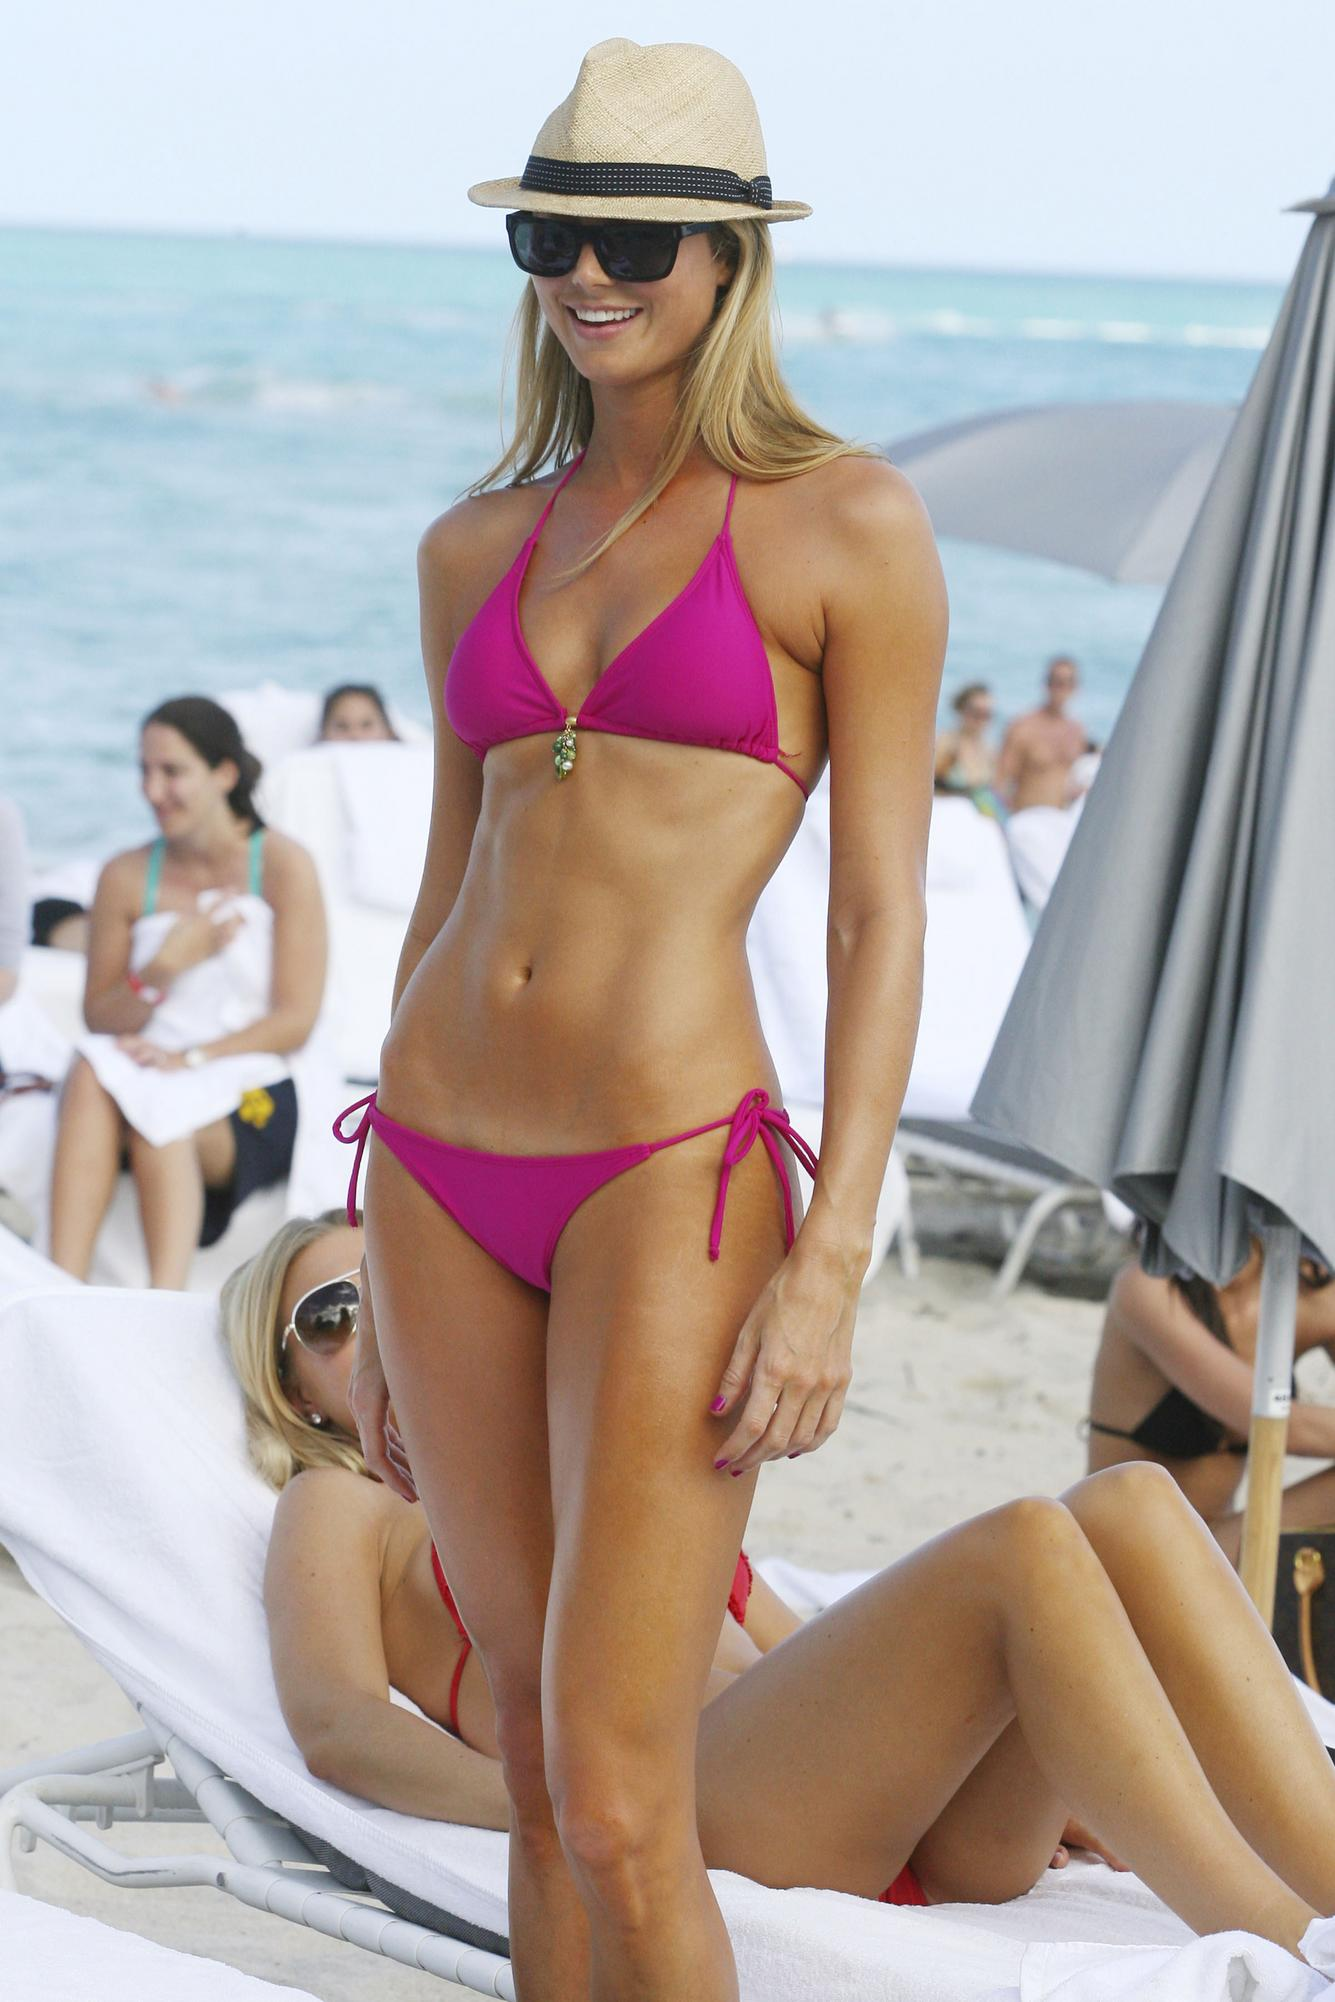 Posted in: Stacy Keibler in a bikini at Encore Beach Club and more